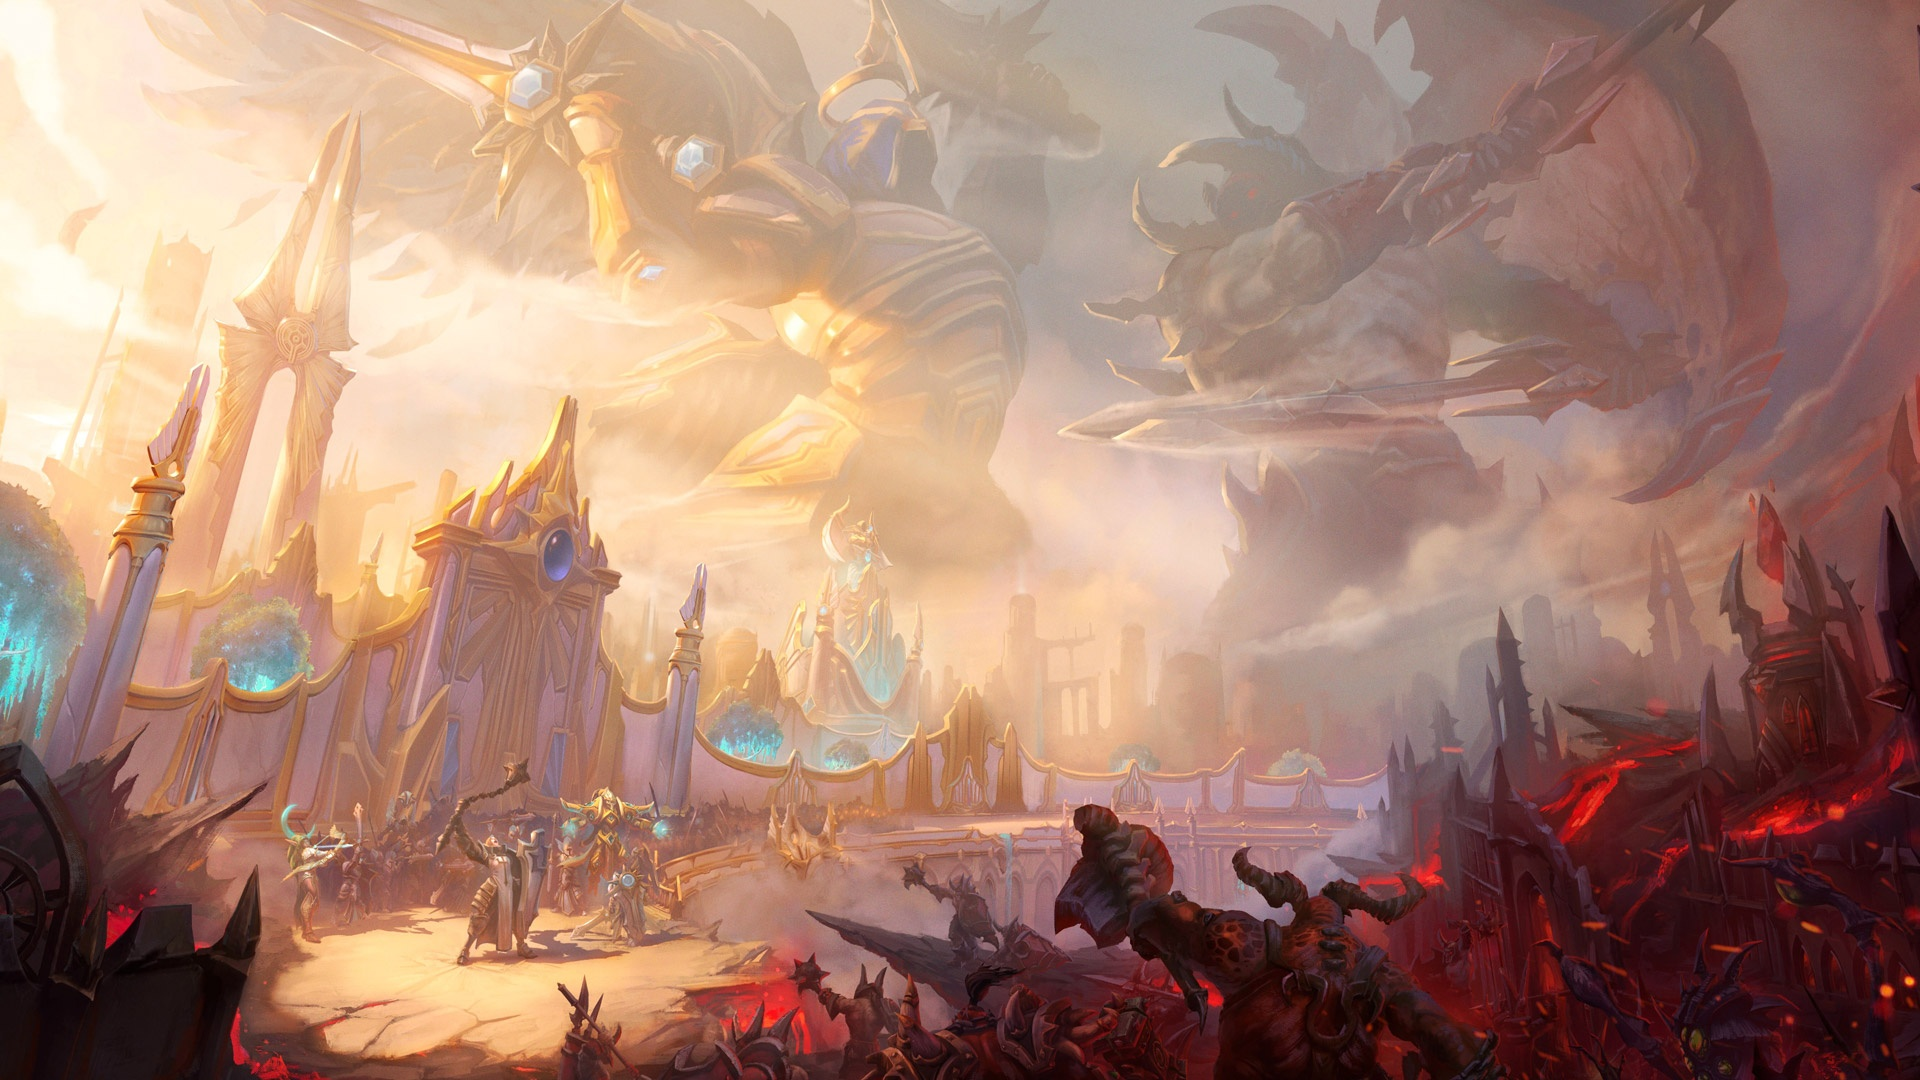 heroes of the storm wallpaper 61886